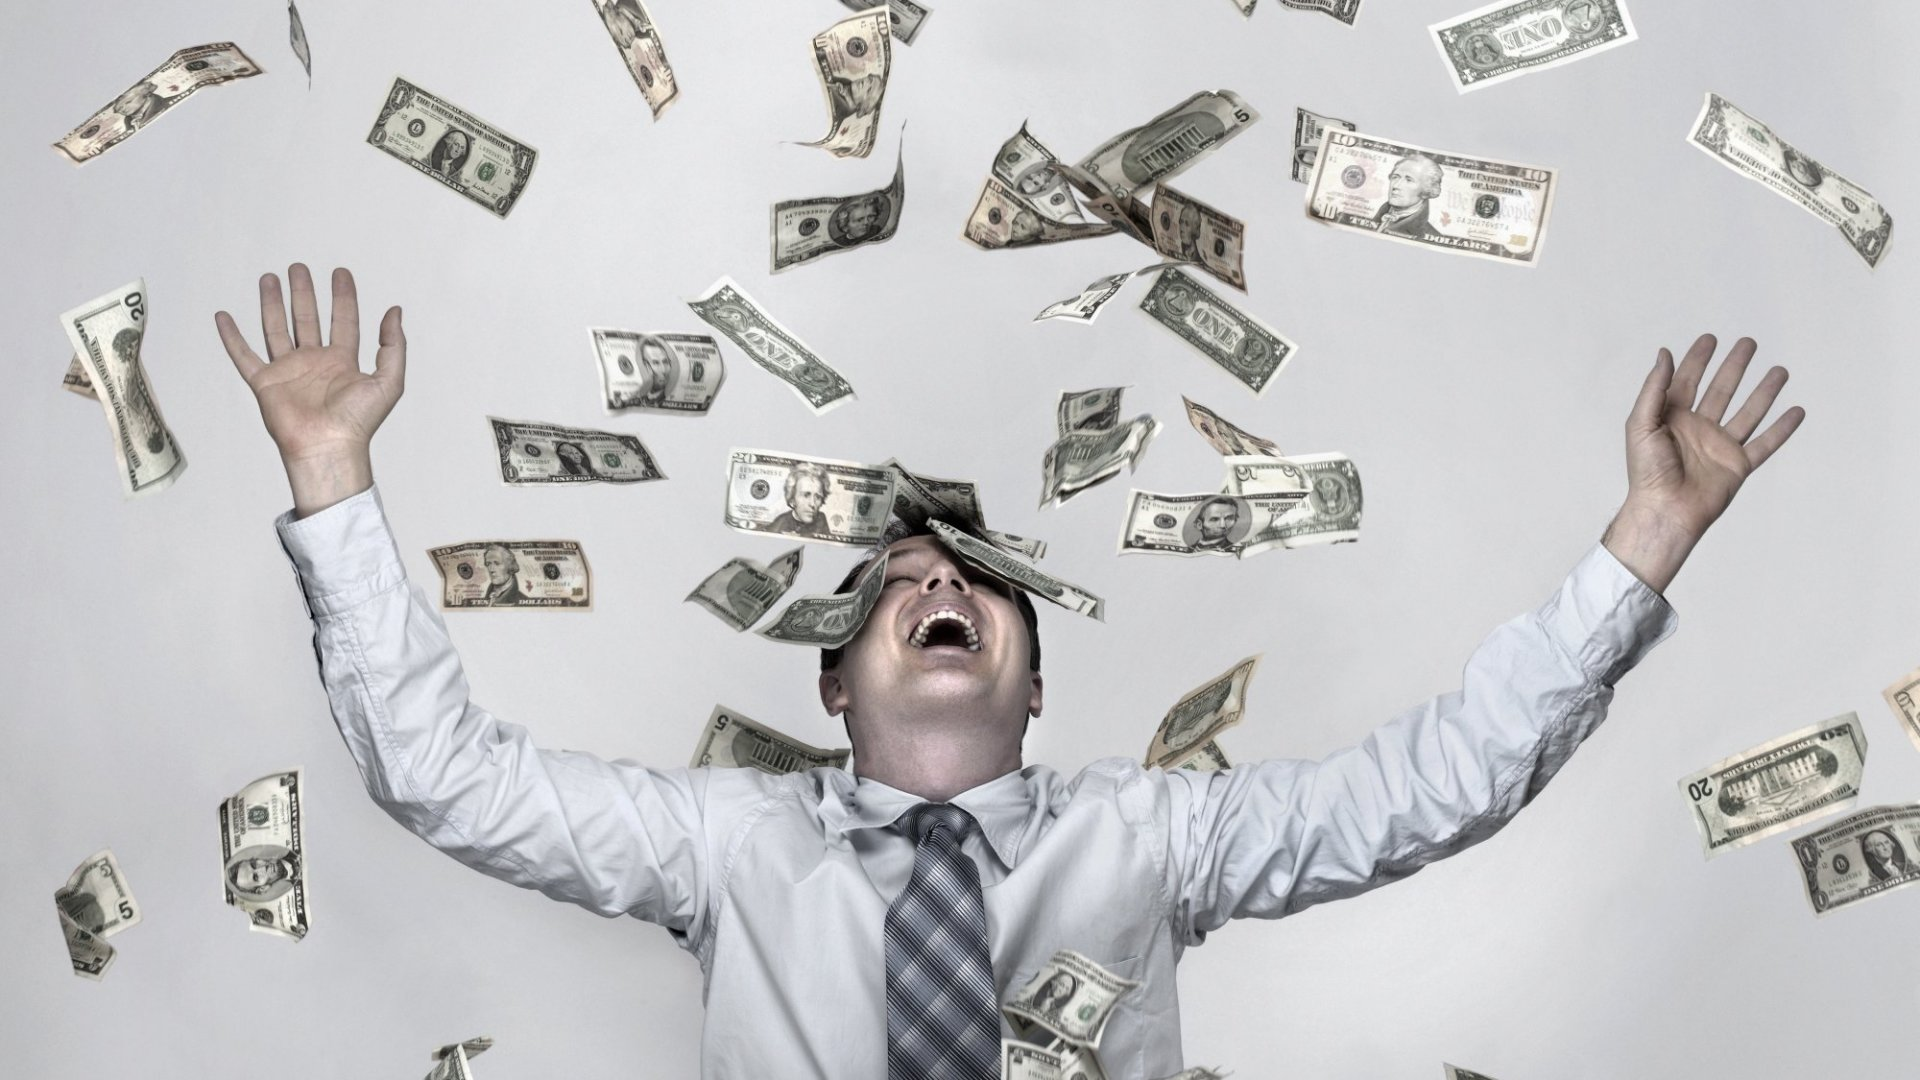 There Are 3 Ways to Pay Salespeople and It's Easy to Make a Costly Mistake